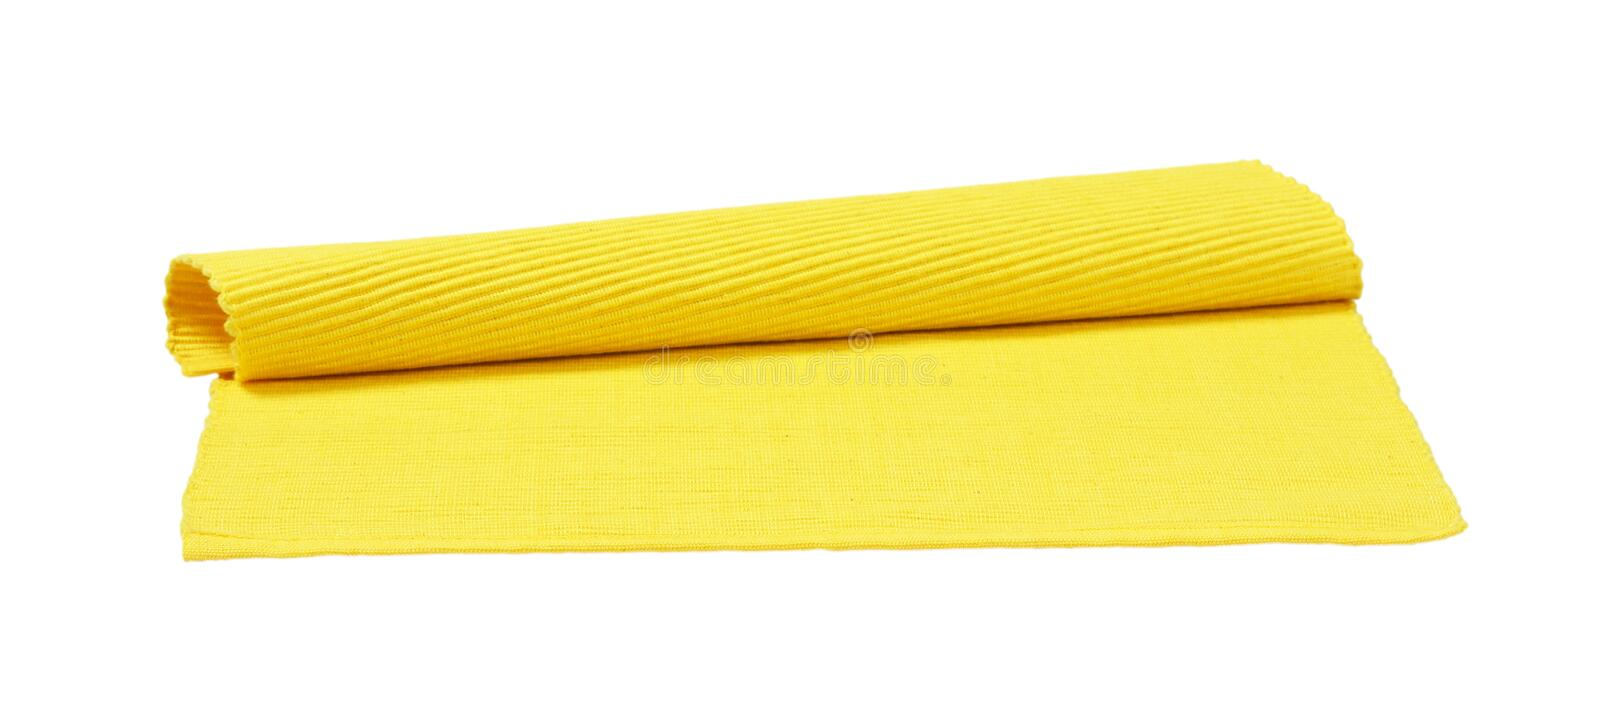 Yellow ribbed cotton placemat stock photography